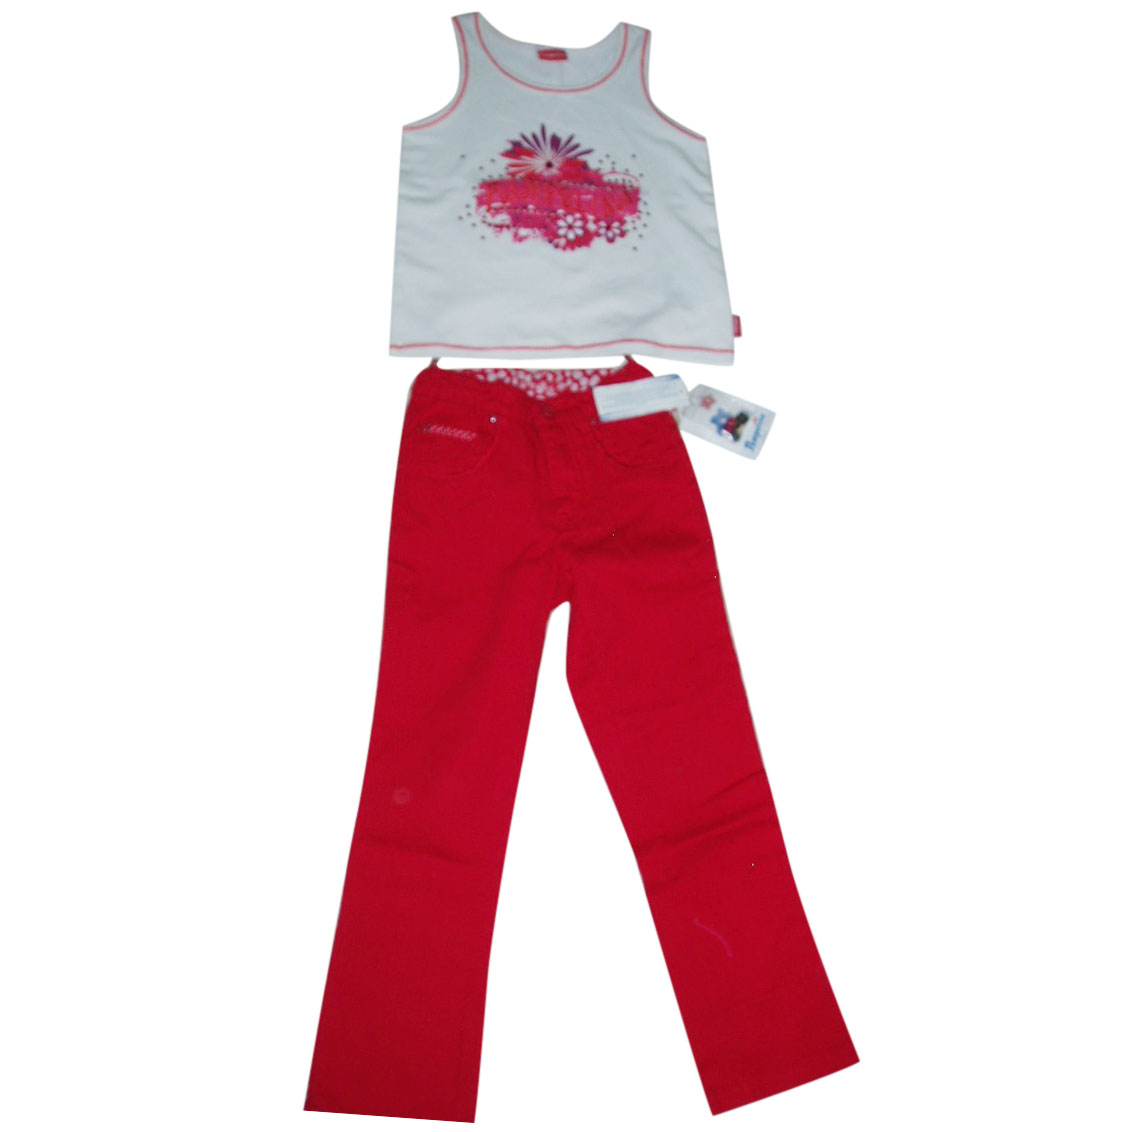 PAMPOLINA 2 piece set, size 6 years